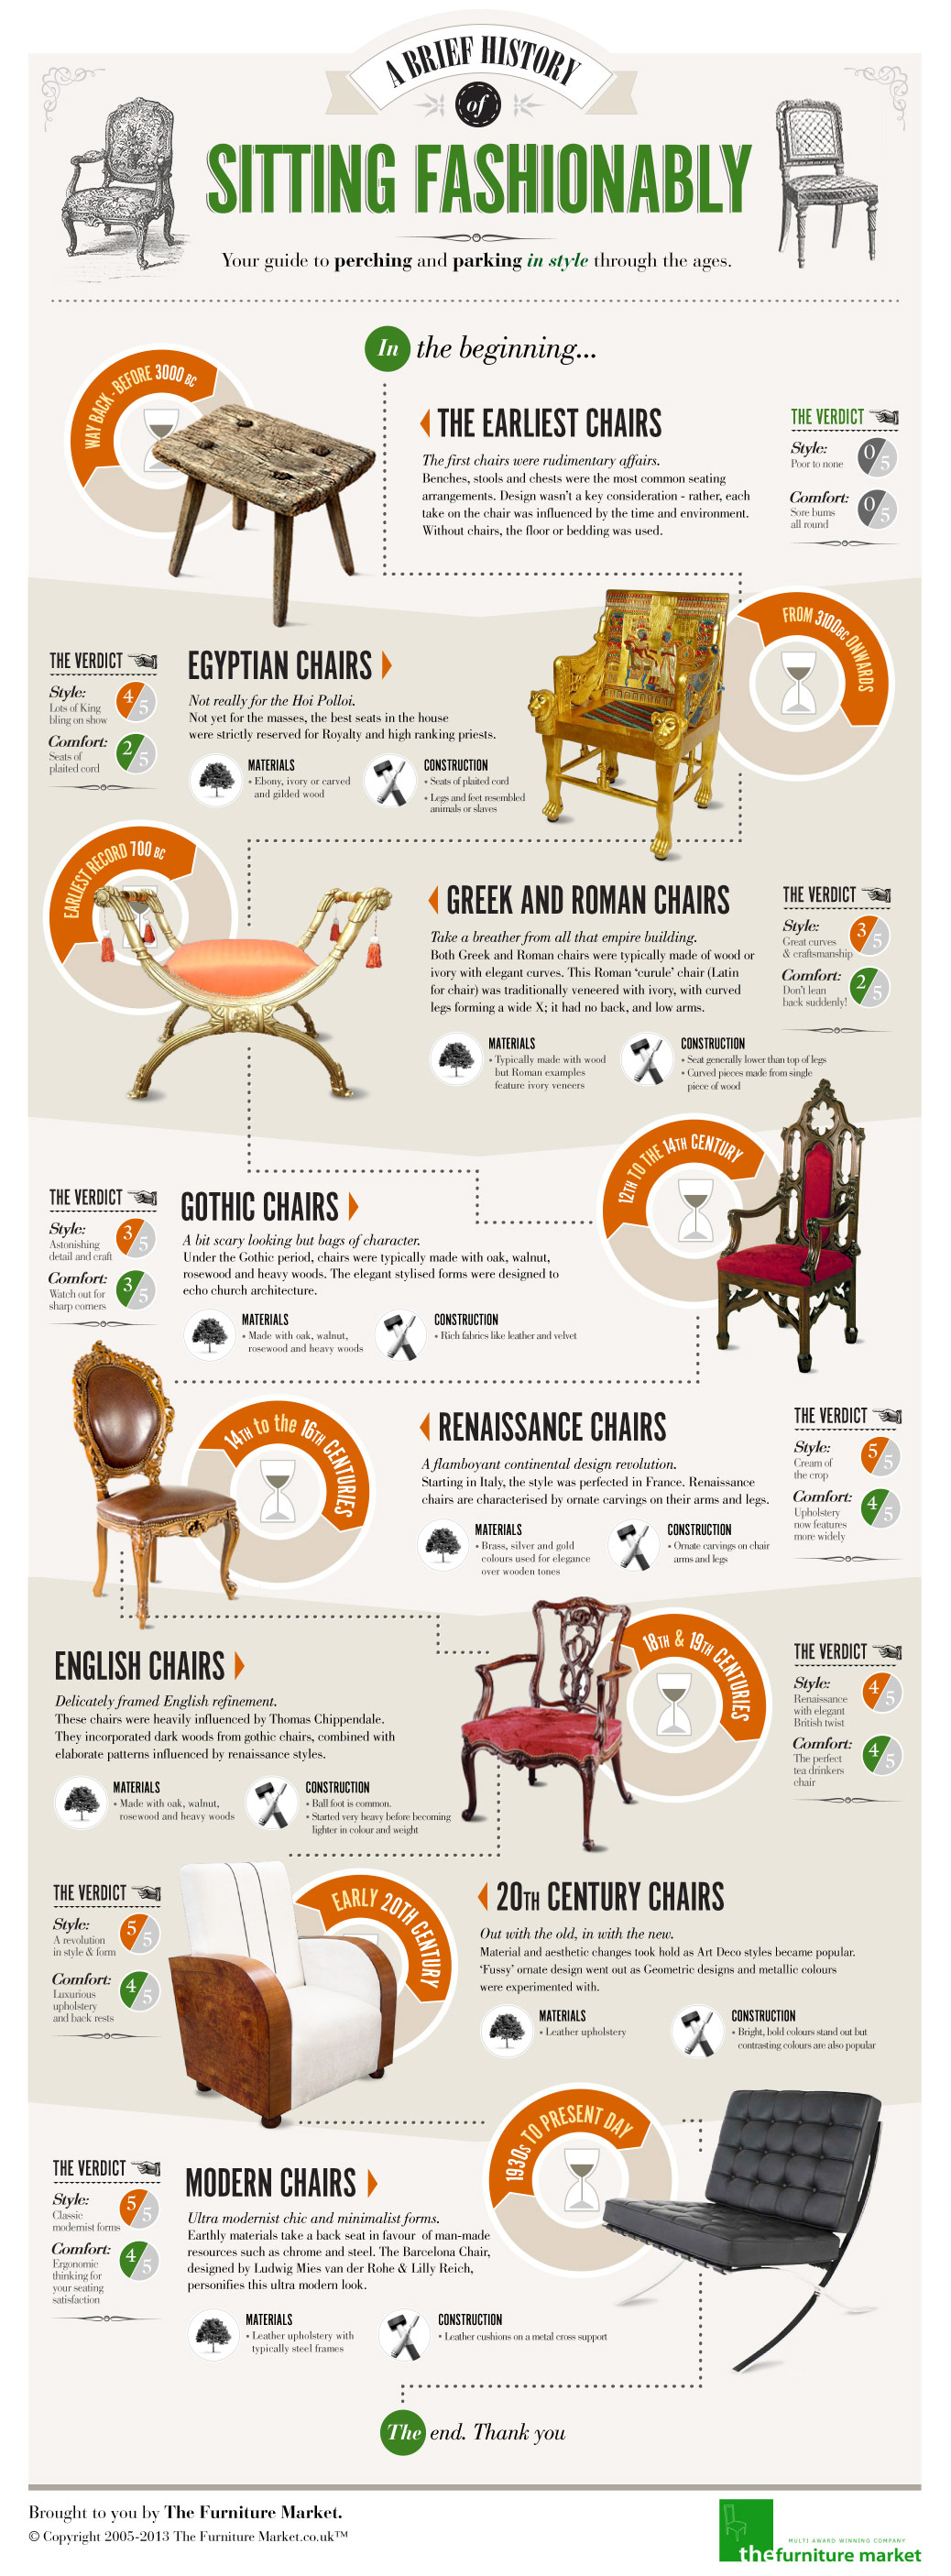 A Brief History of Sitting Fashionably